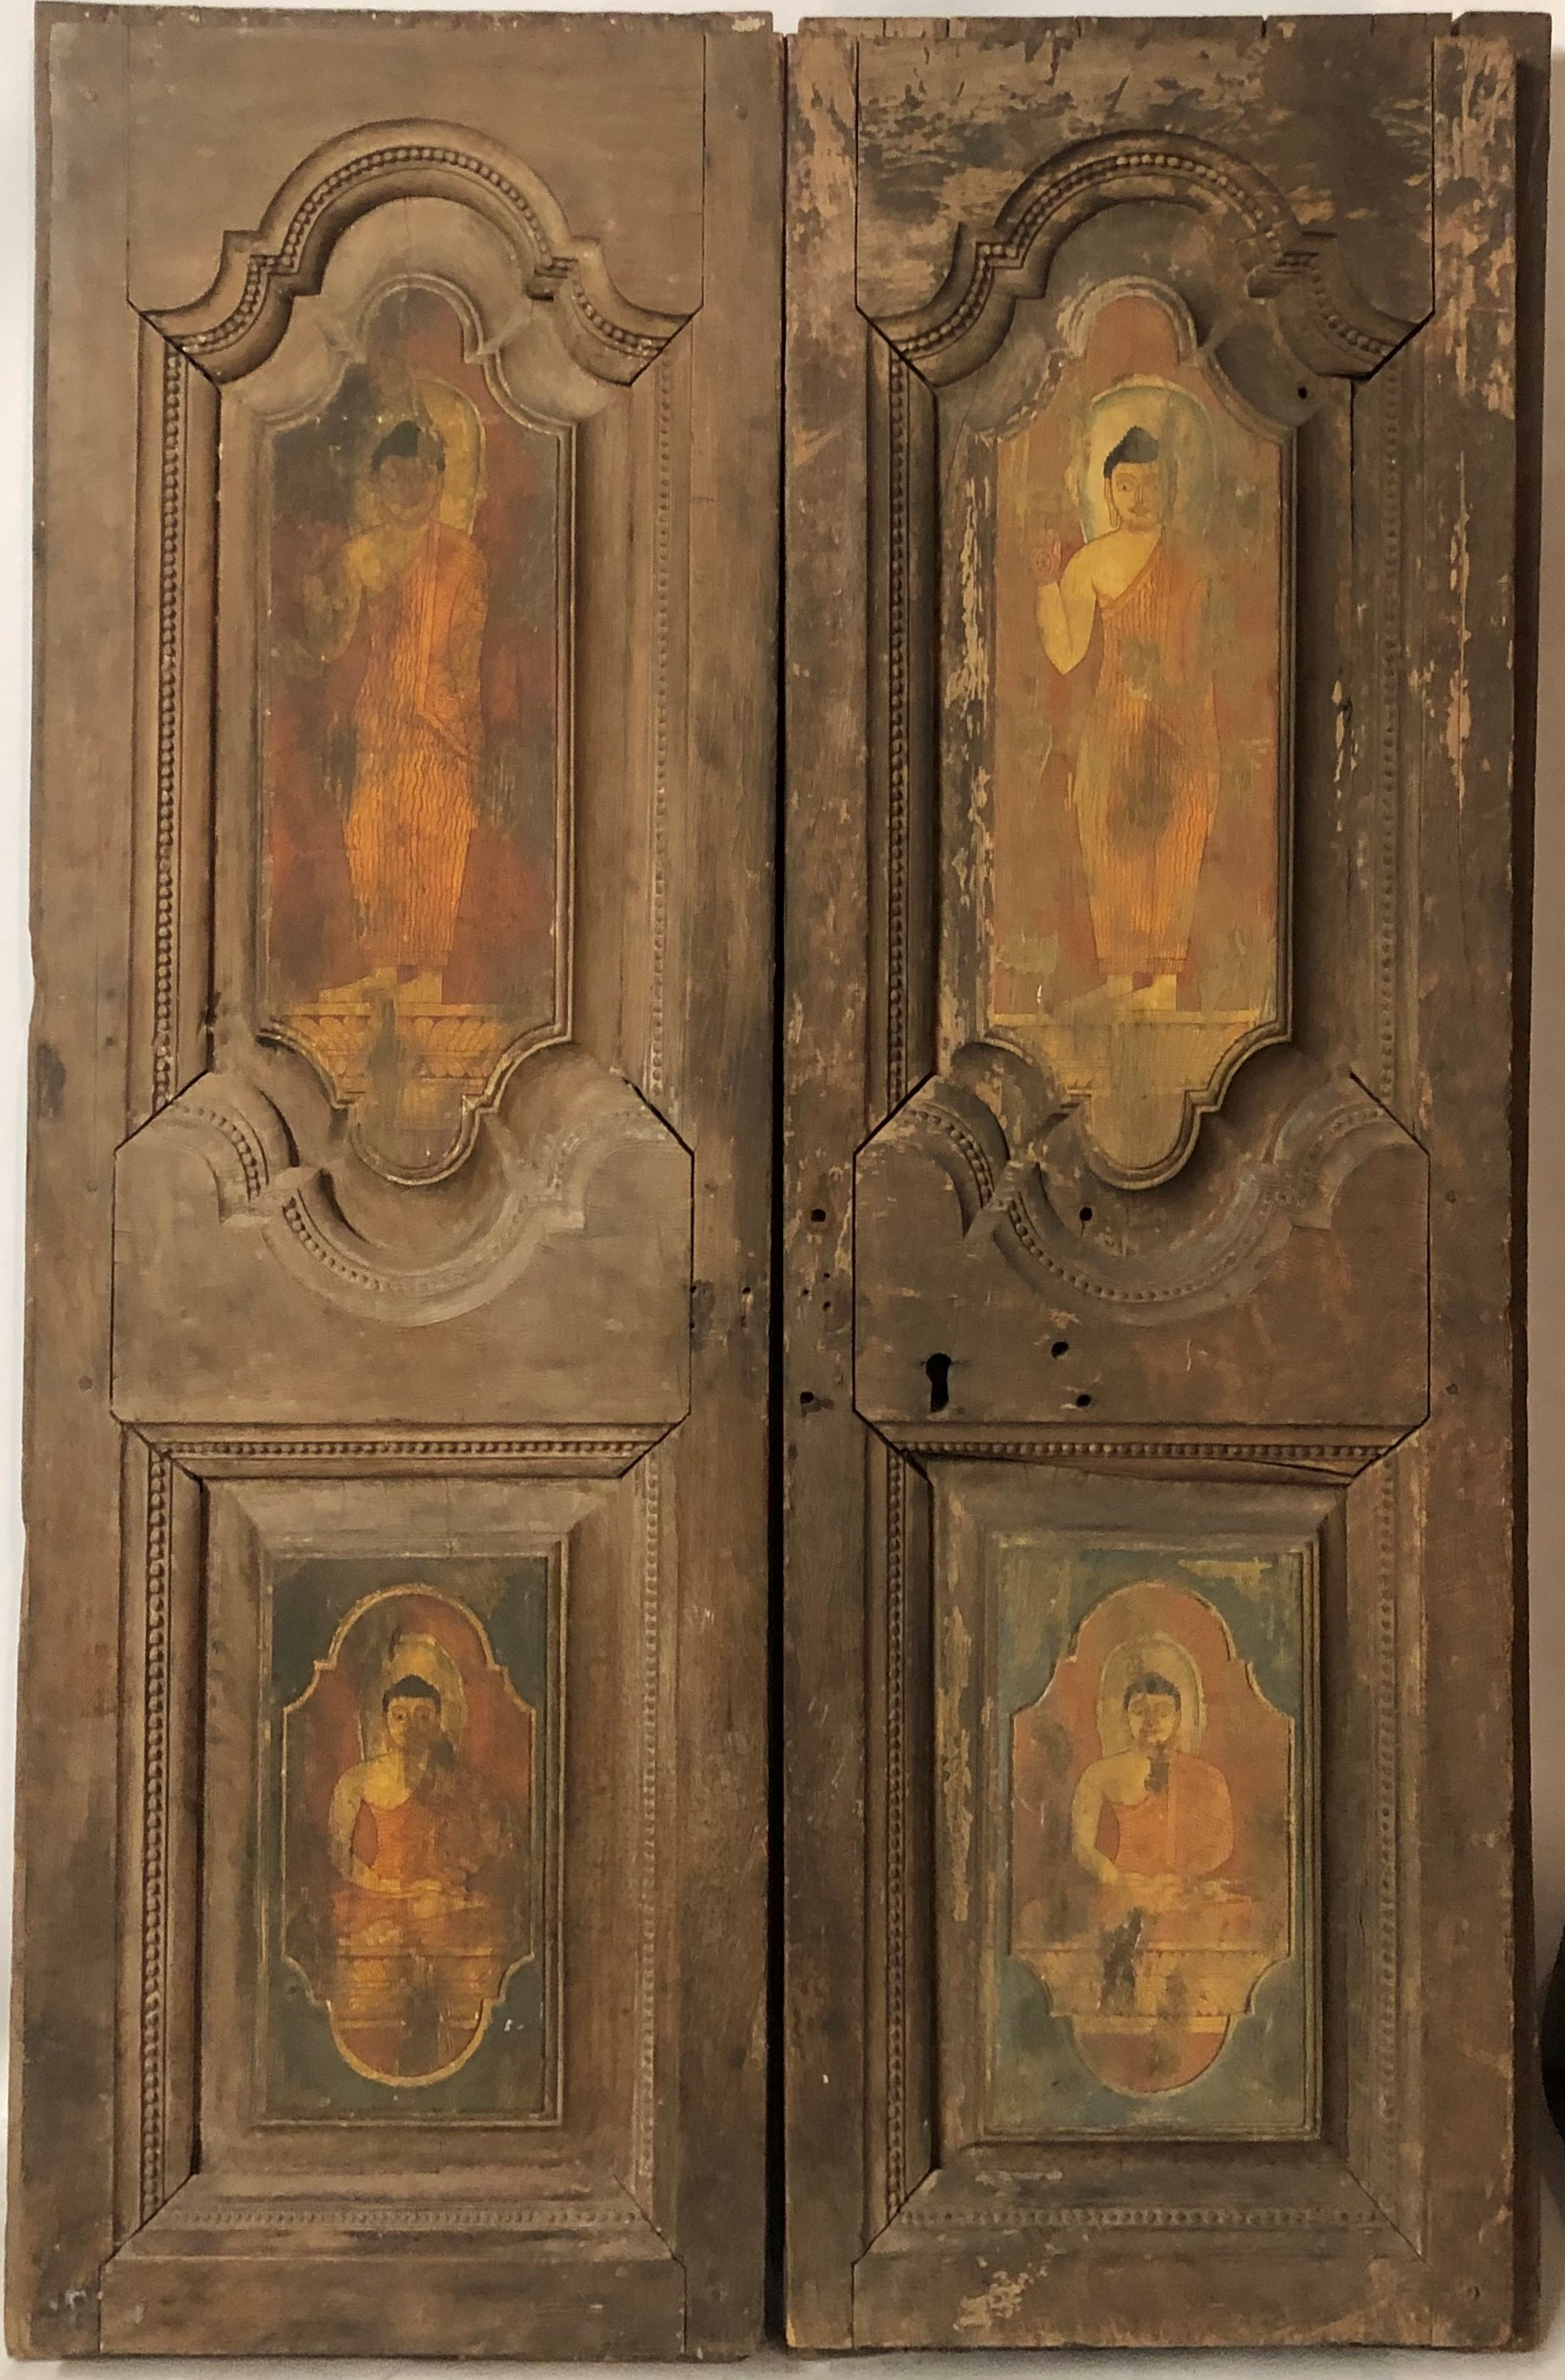 Lot 719 - A PAIR OF ANTIQUE INDIAN DOORS The ogee panels painted with Hindu gods. 100 x 155 cm